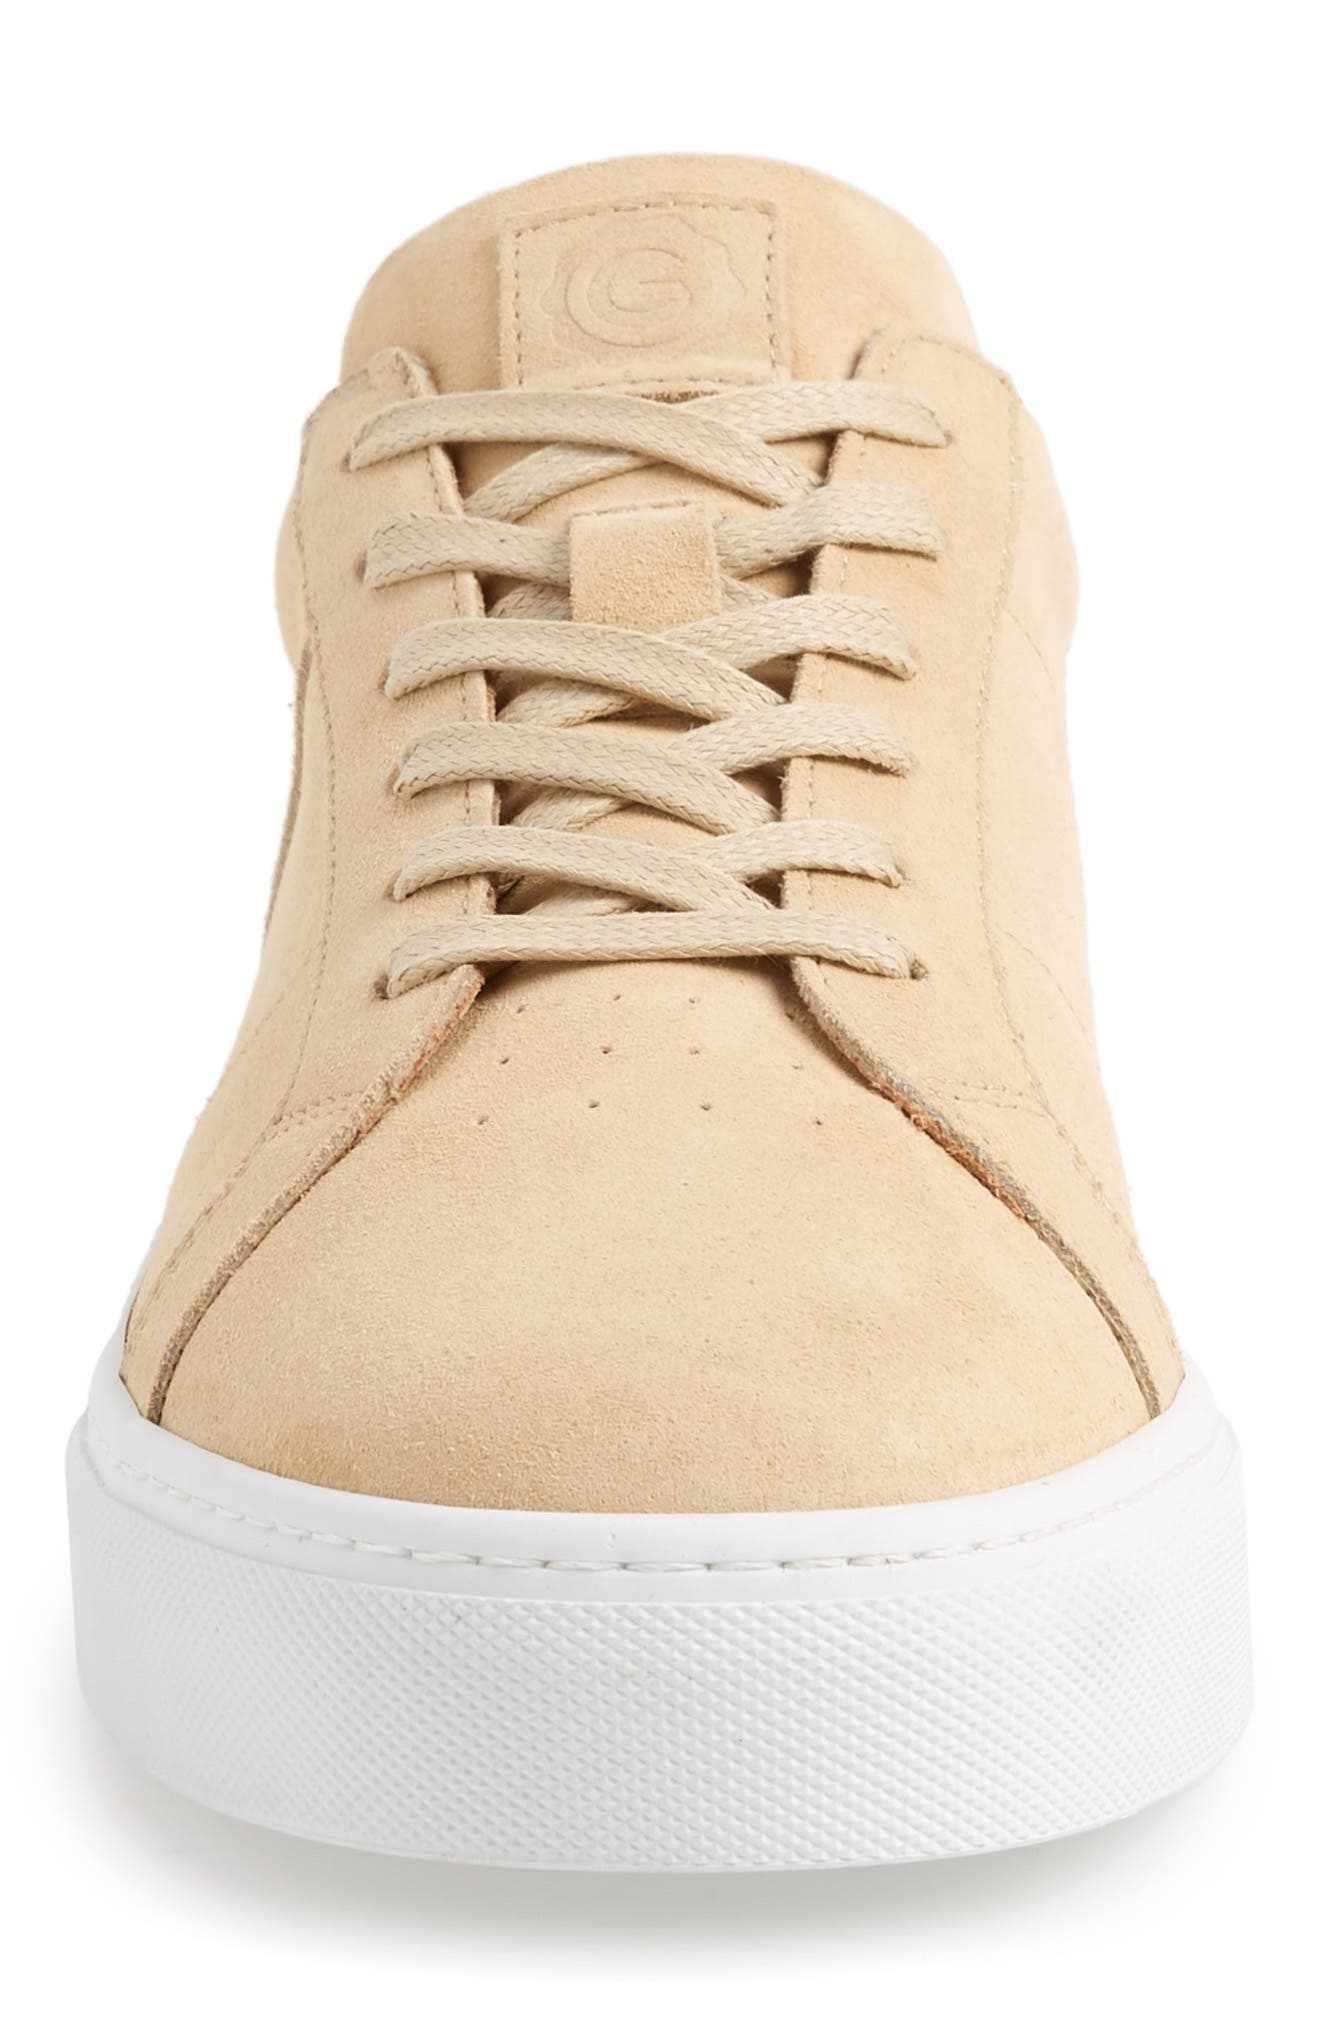 Nick Wooster x GREATS Royale Sneaker,                             Alternate thumbnail 4, color,                             250